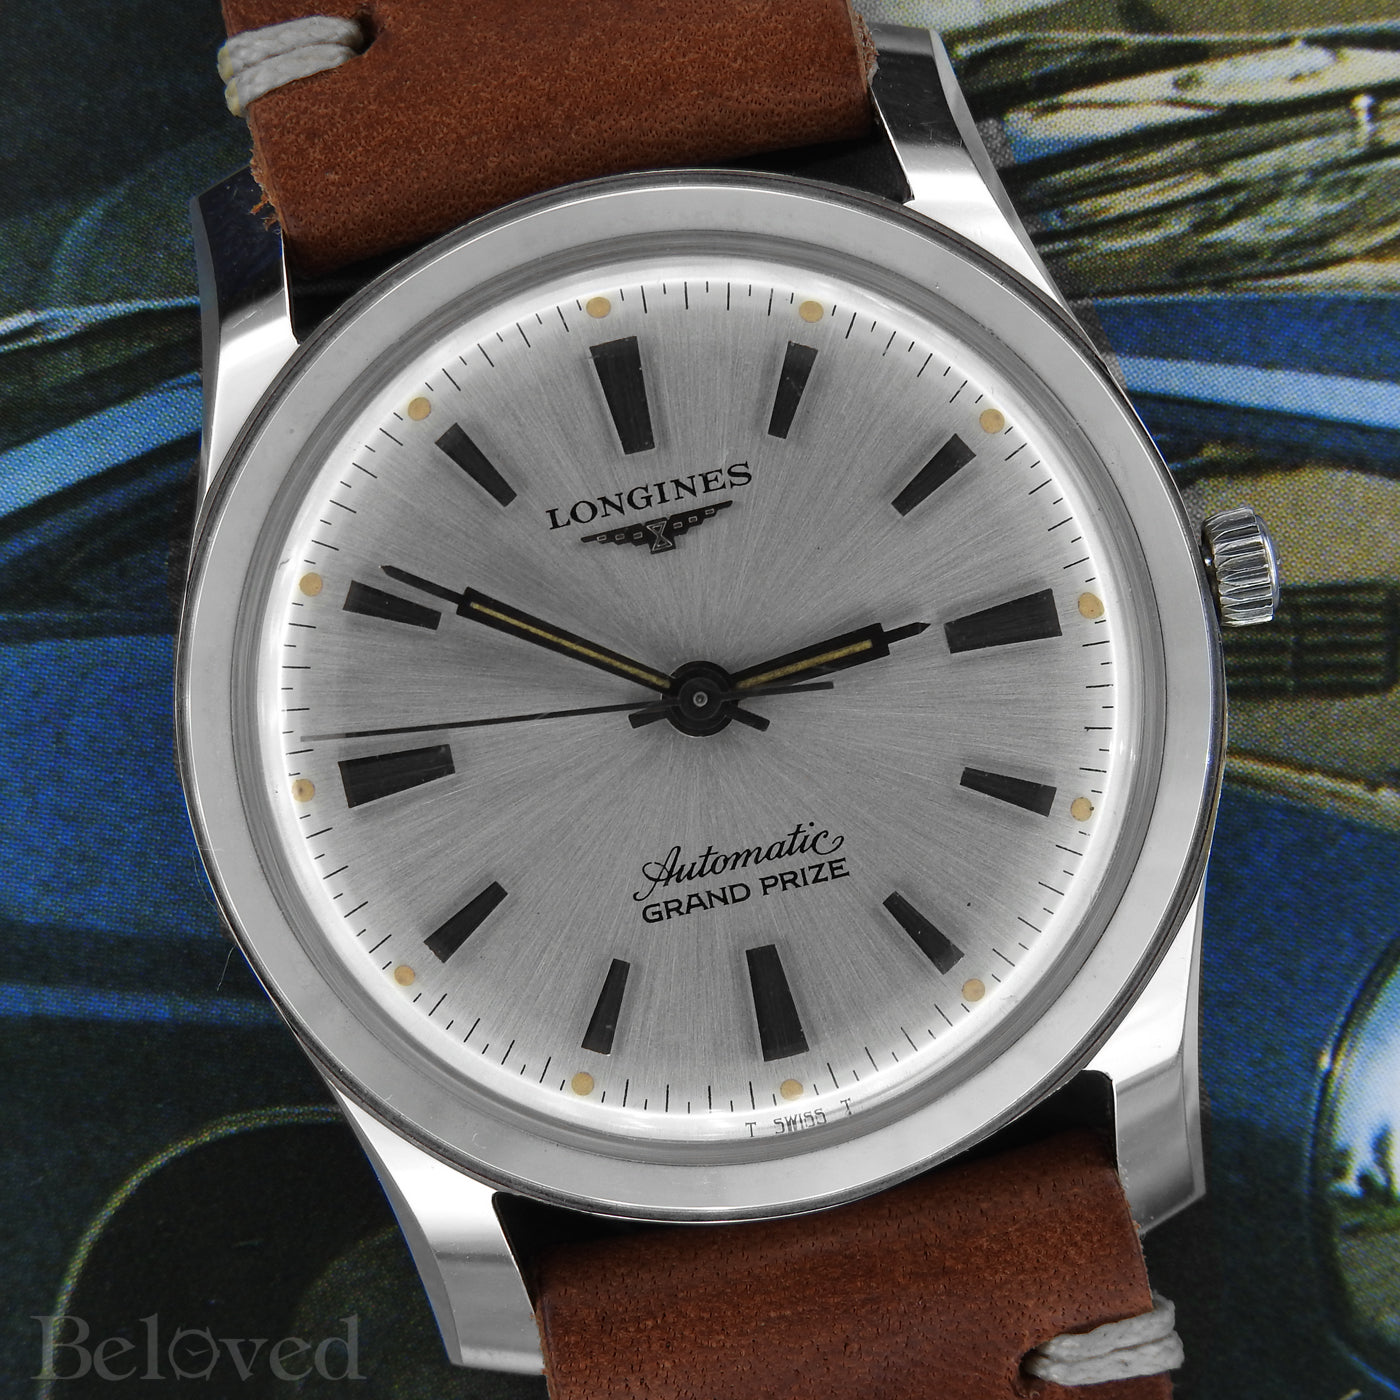 Photographed below Longines Grand Prize 1300